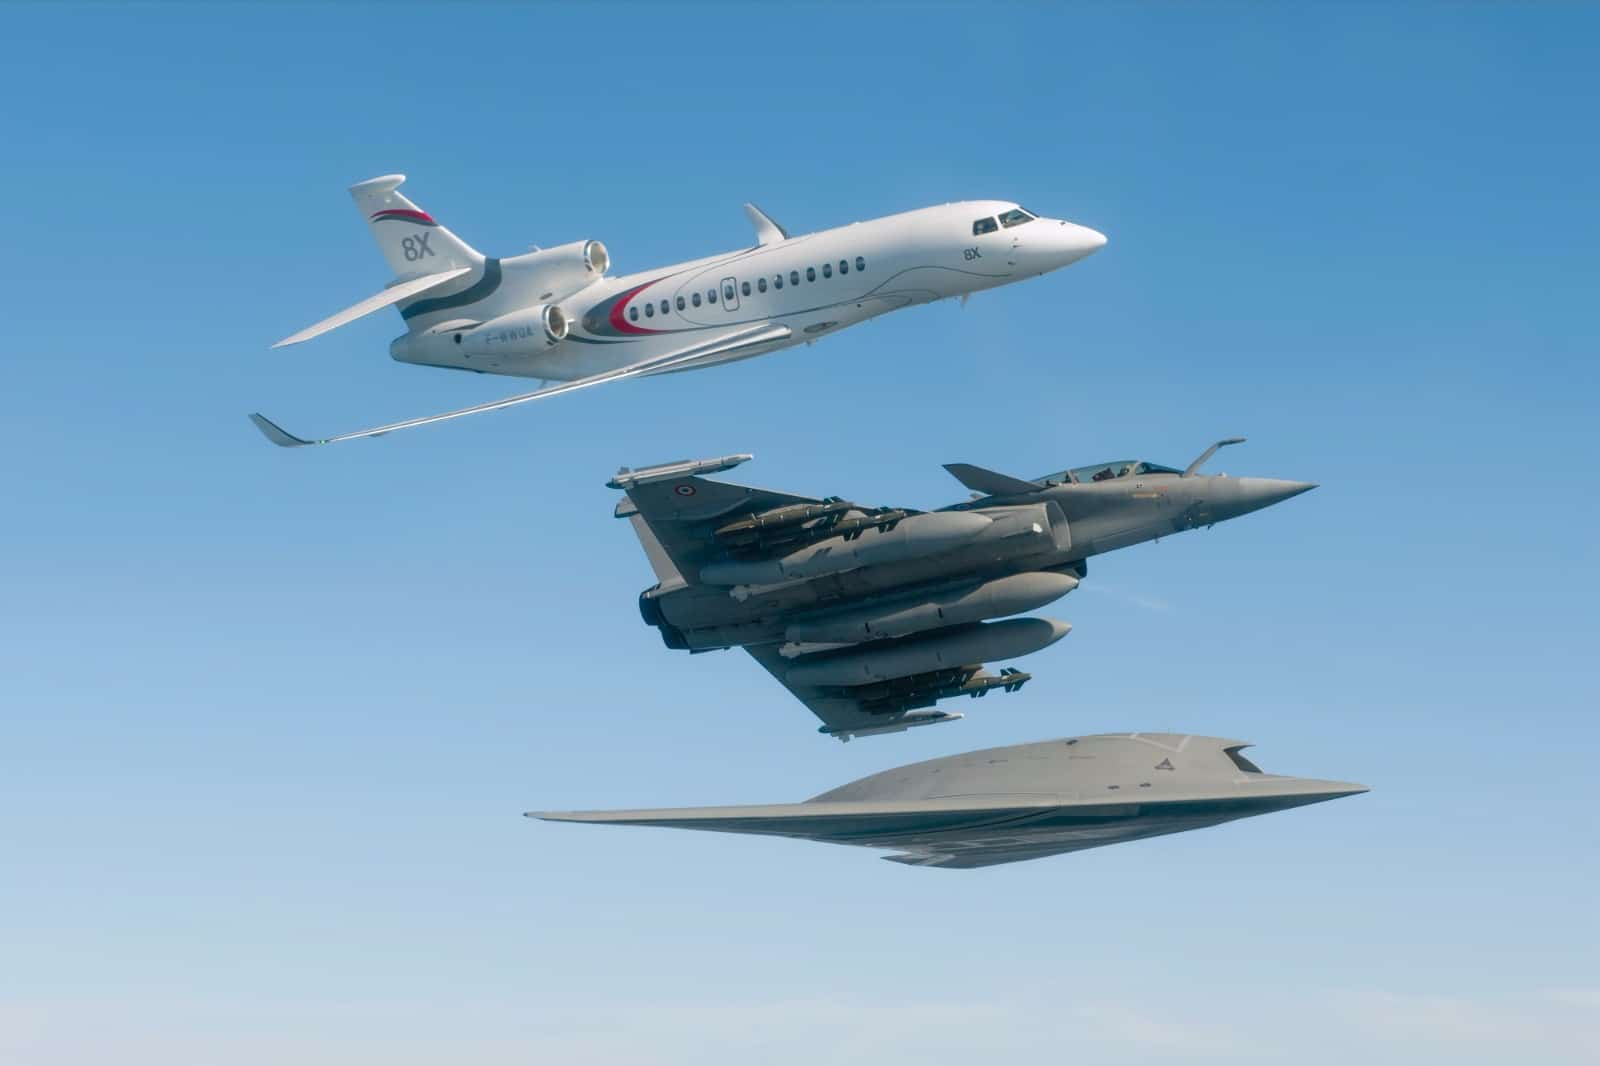 dassault aviation a major player to aeronautics